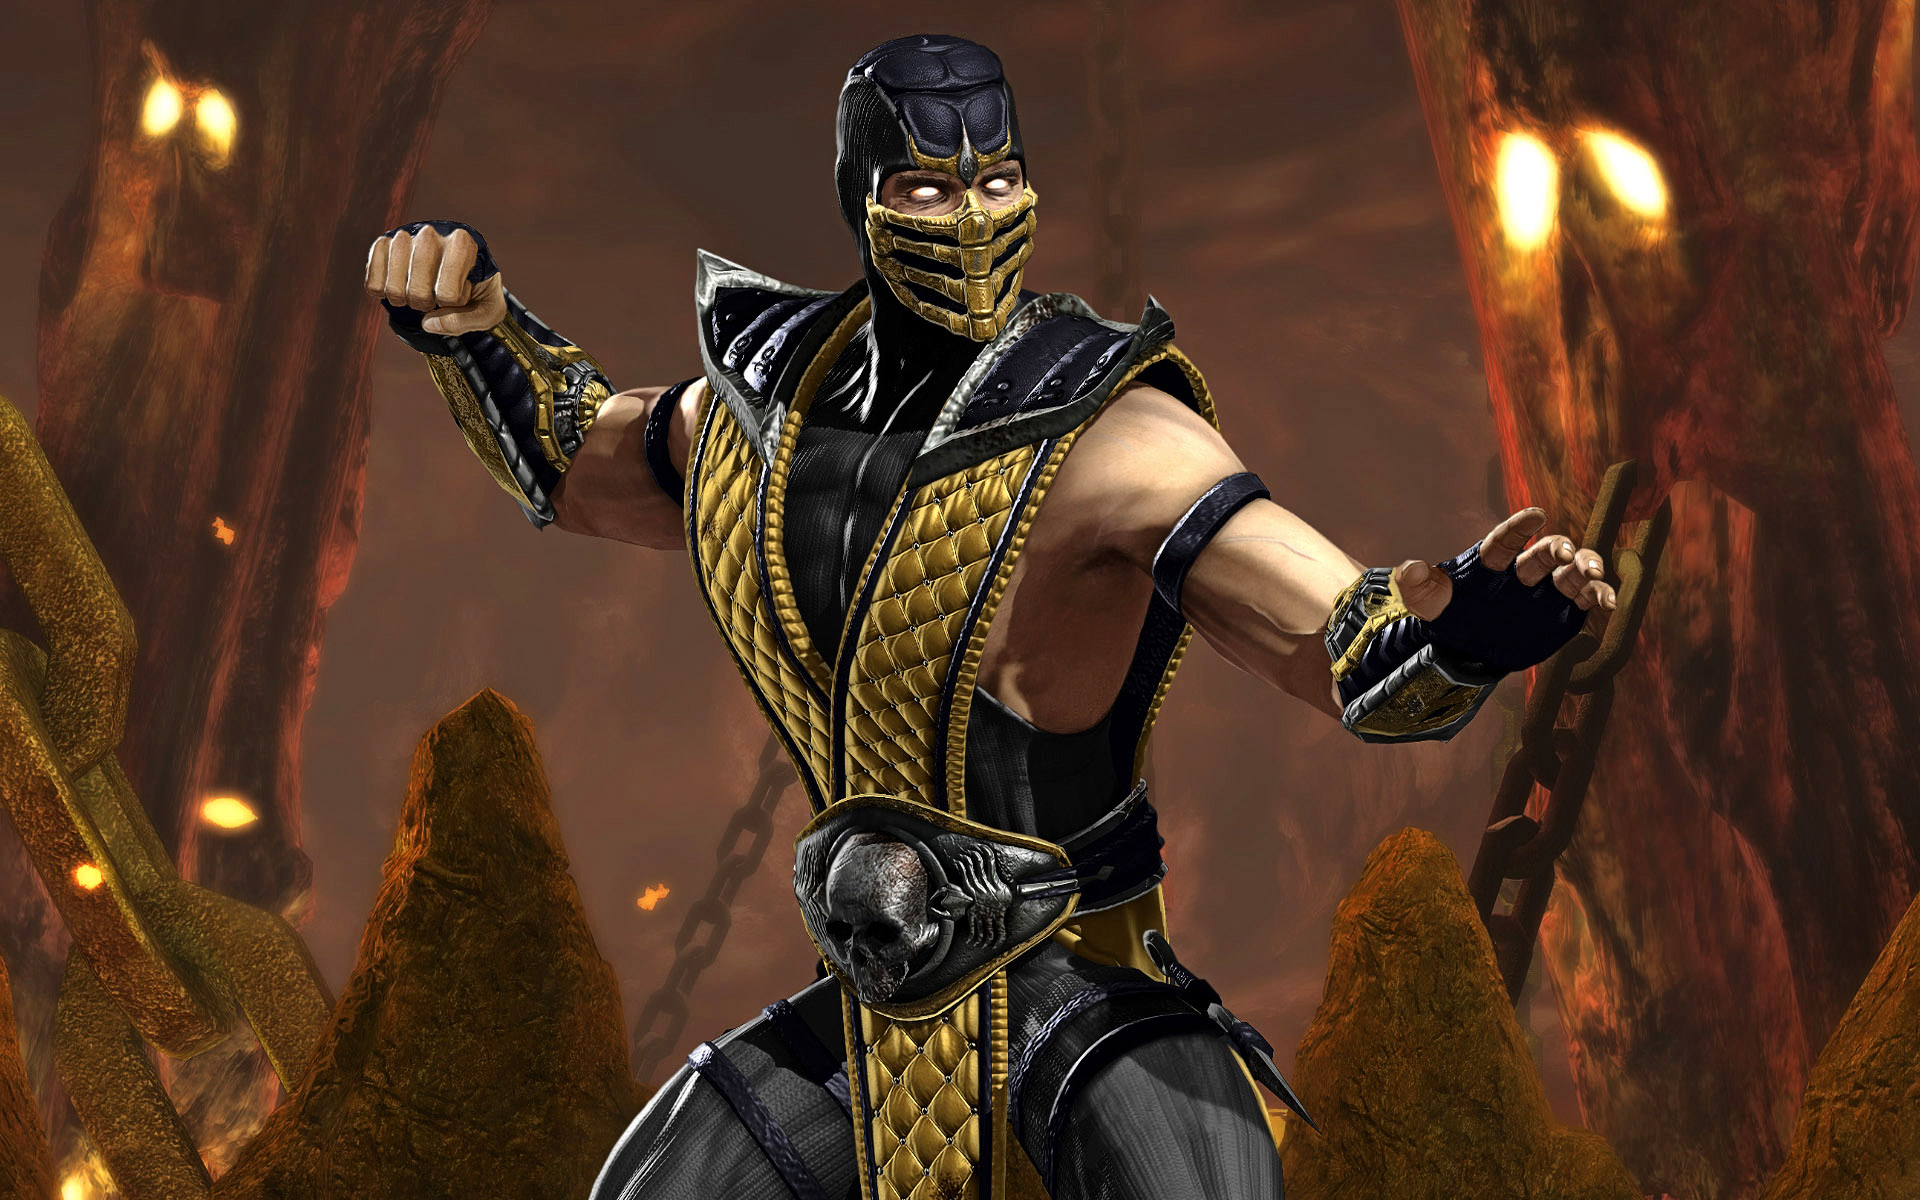 Scorpion Wallpaper Mortal Kombat   FotoLatinasCom 1920x1200